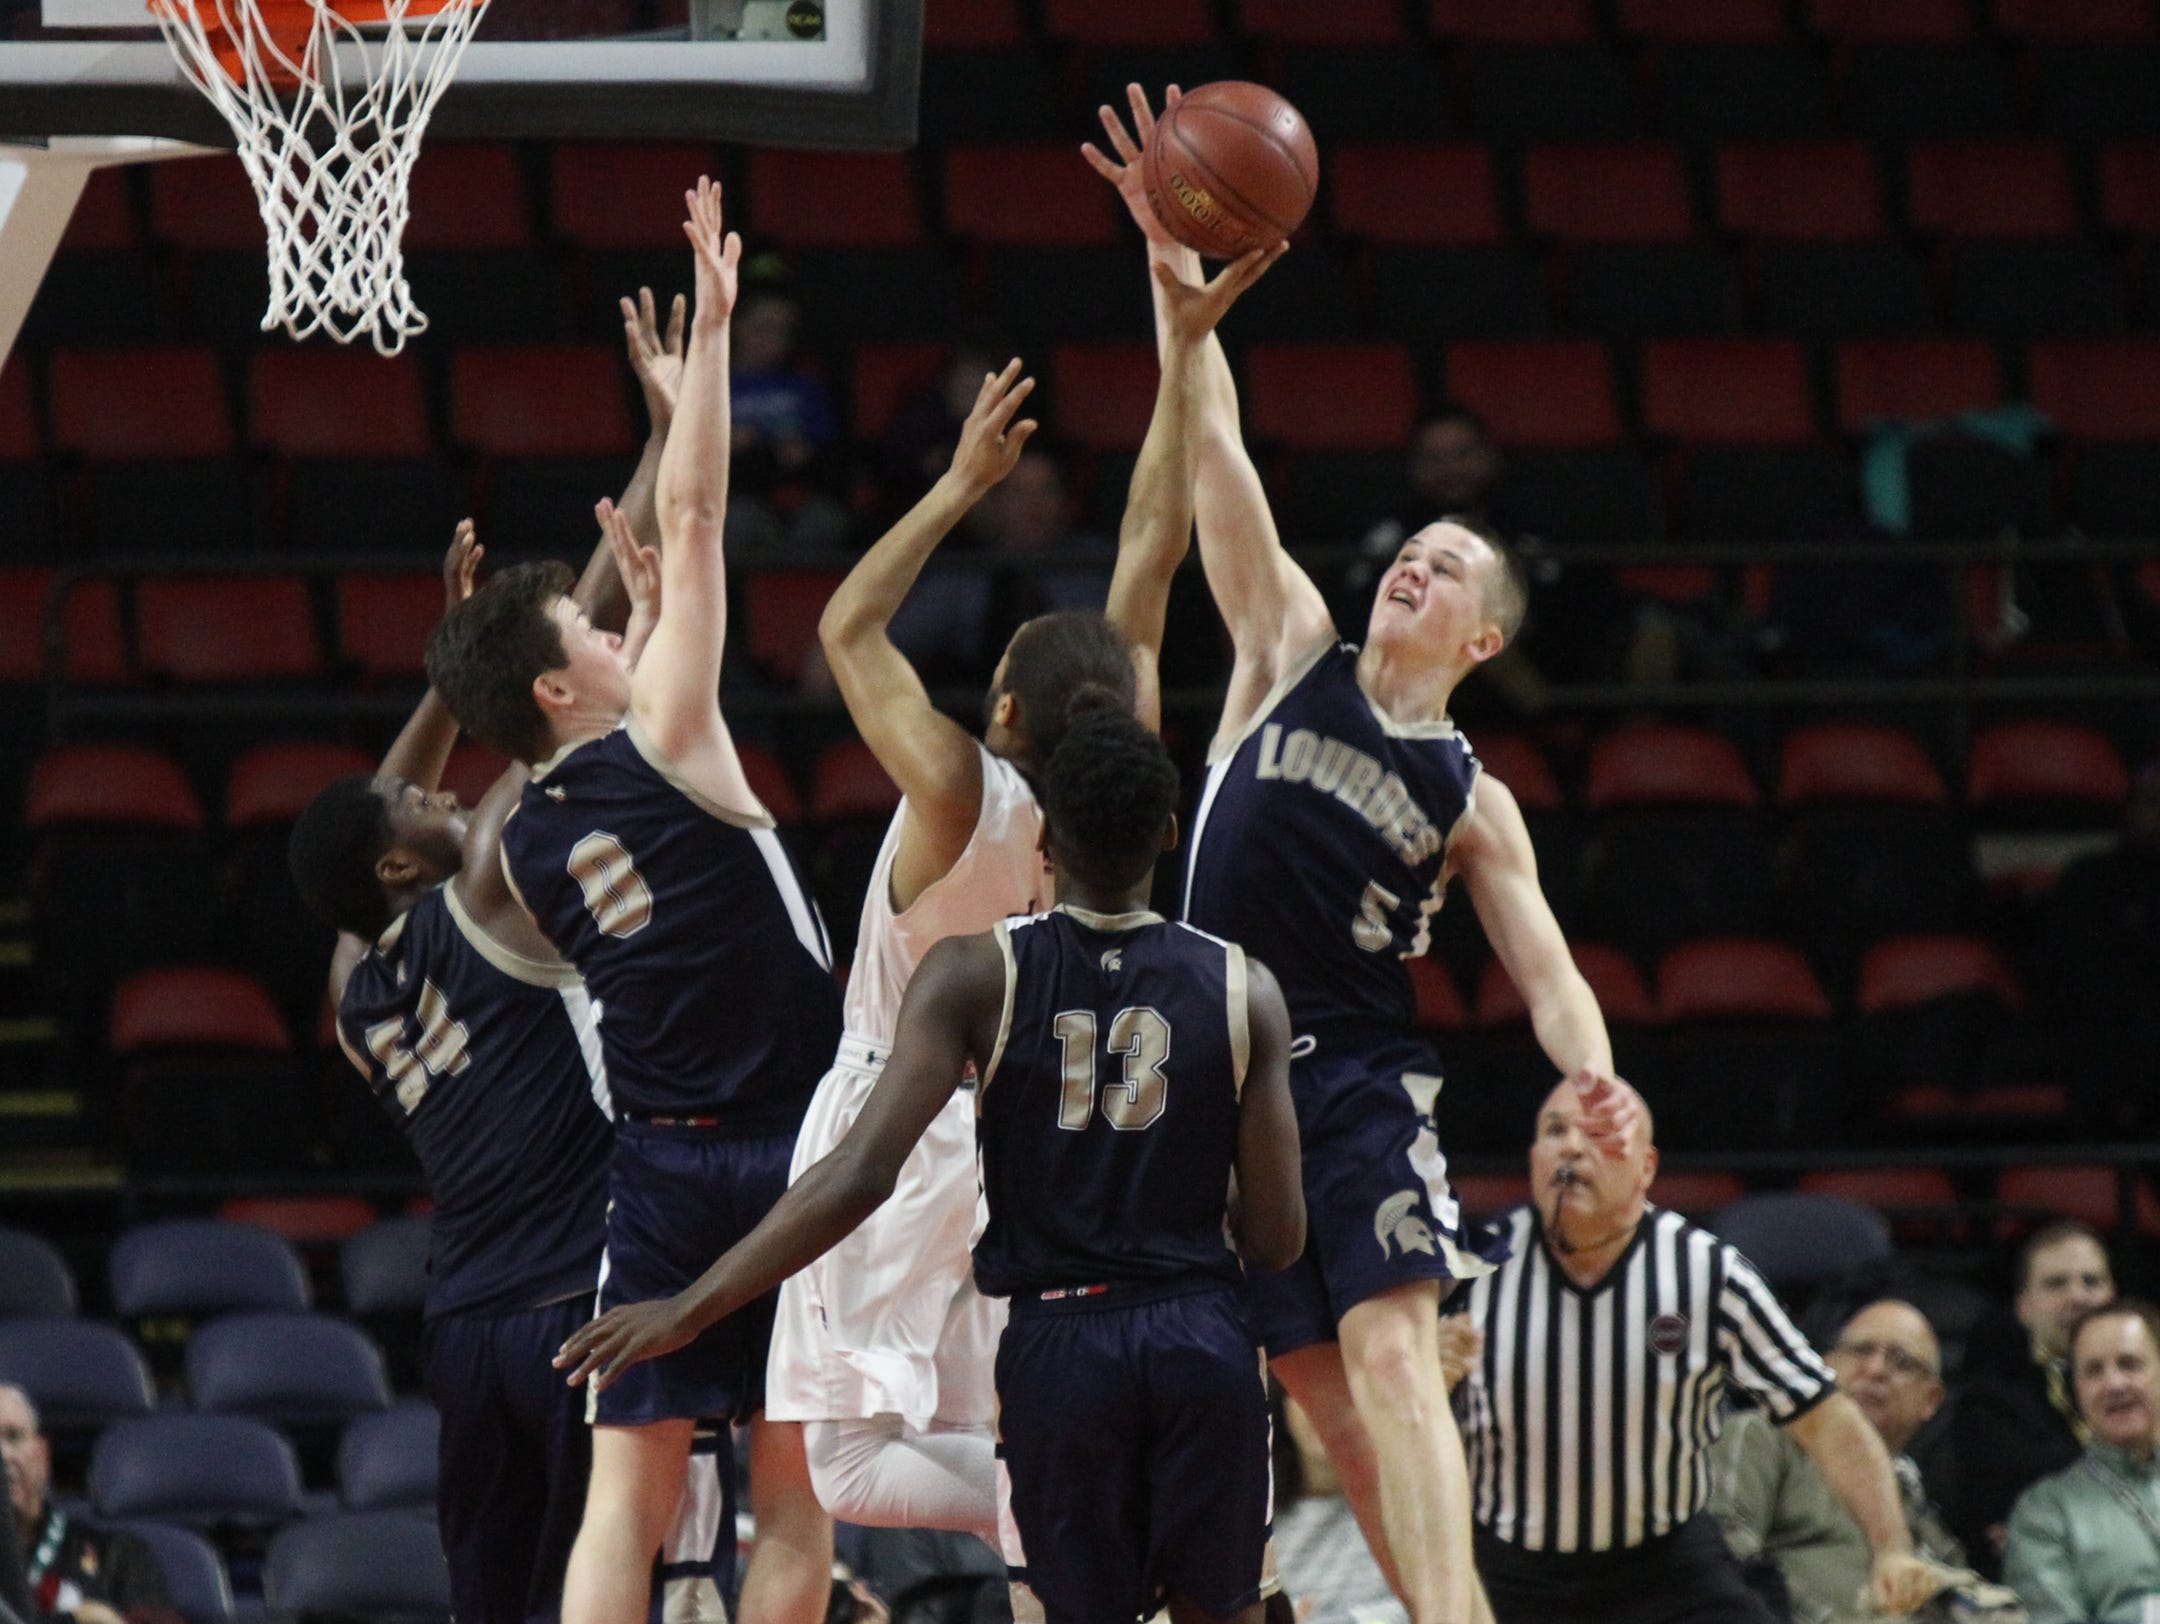 Lourdes' Aiden Hildebrand (5) blocks a shot during their 70-67 win over Southampton in the NYSPHSAA boys Class A semifinal basketball game at Floyd L. Maines Veterans Memorial Arena in Binghamton on Saturday, March 18, 2017.